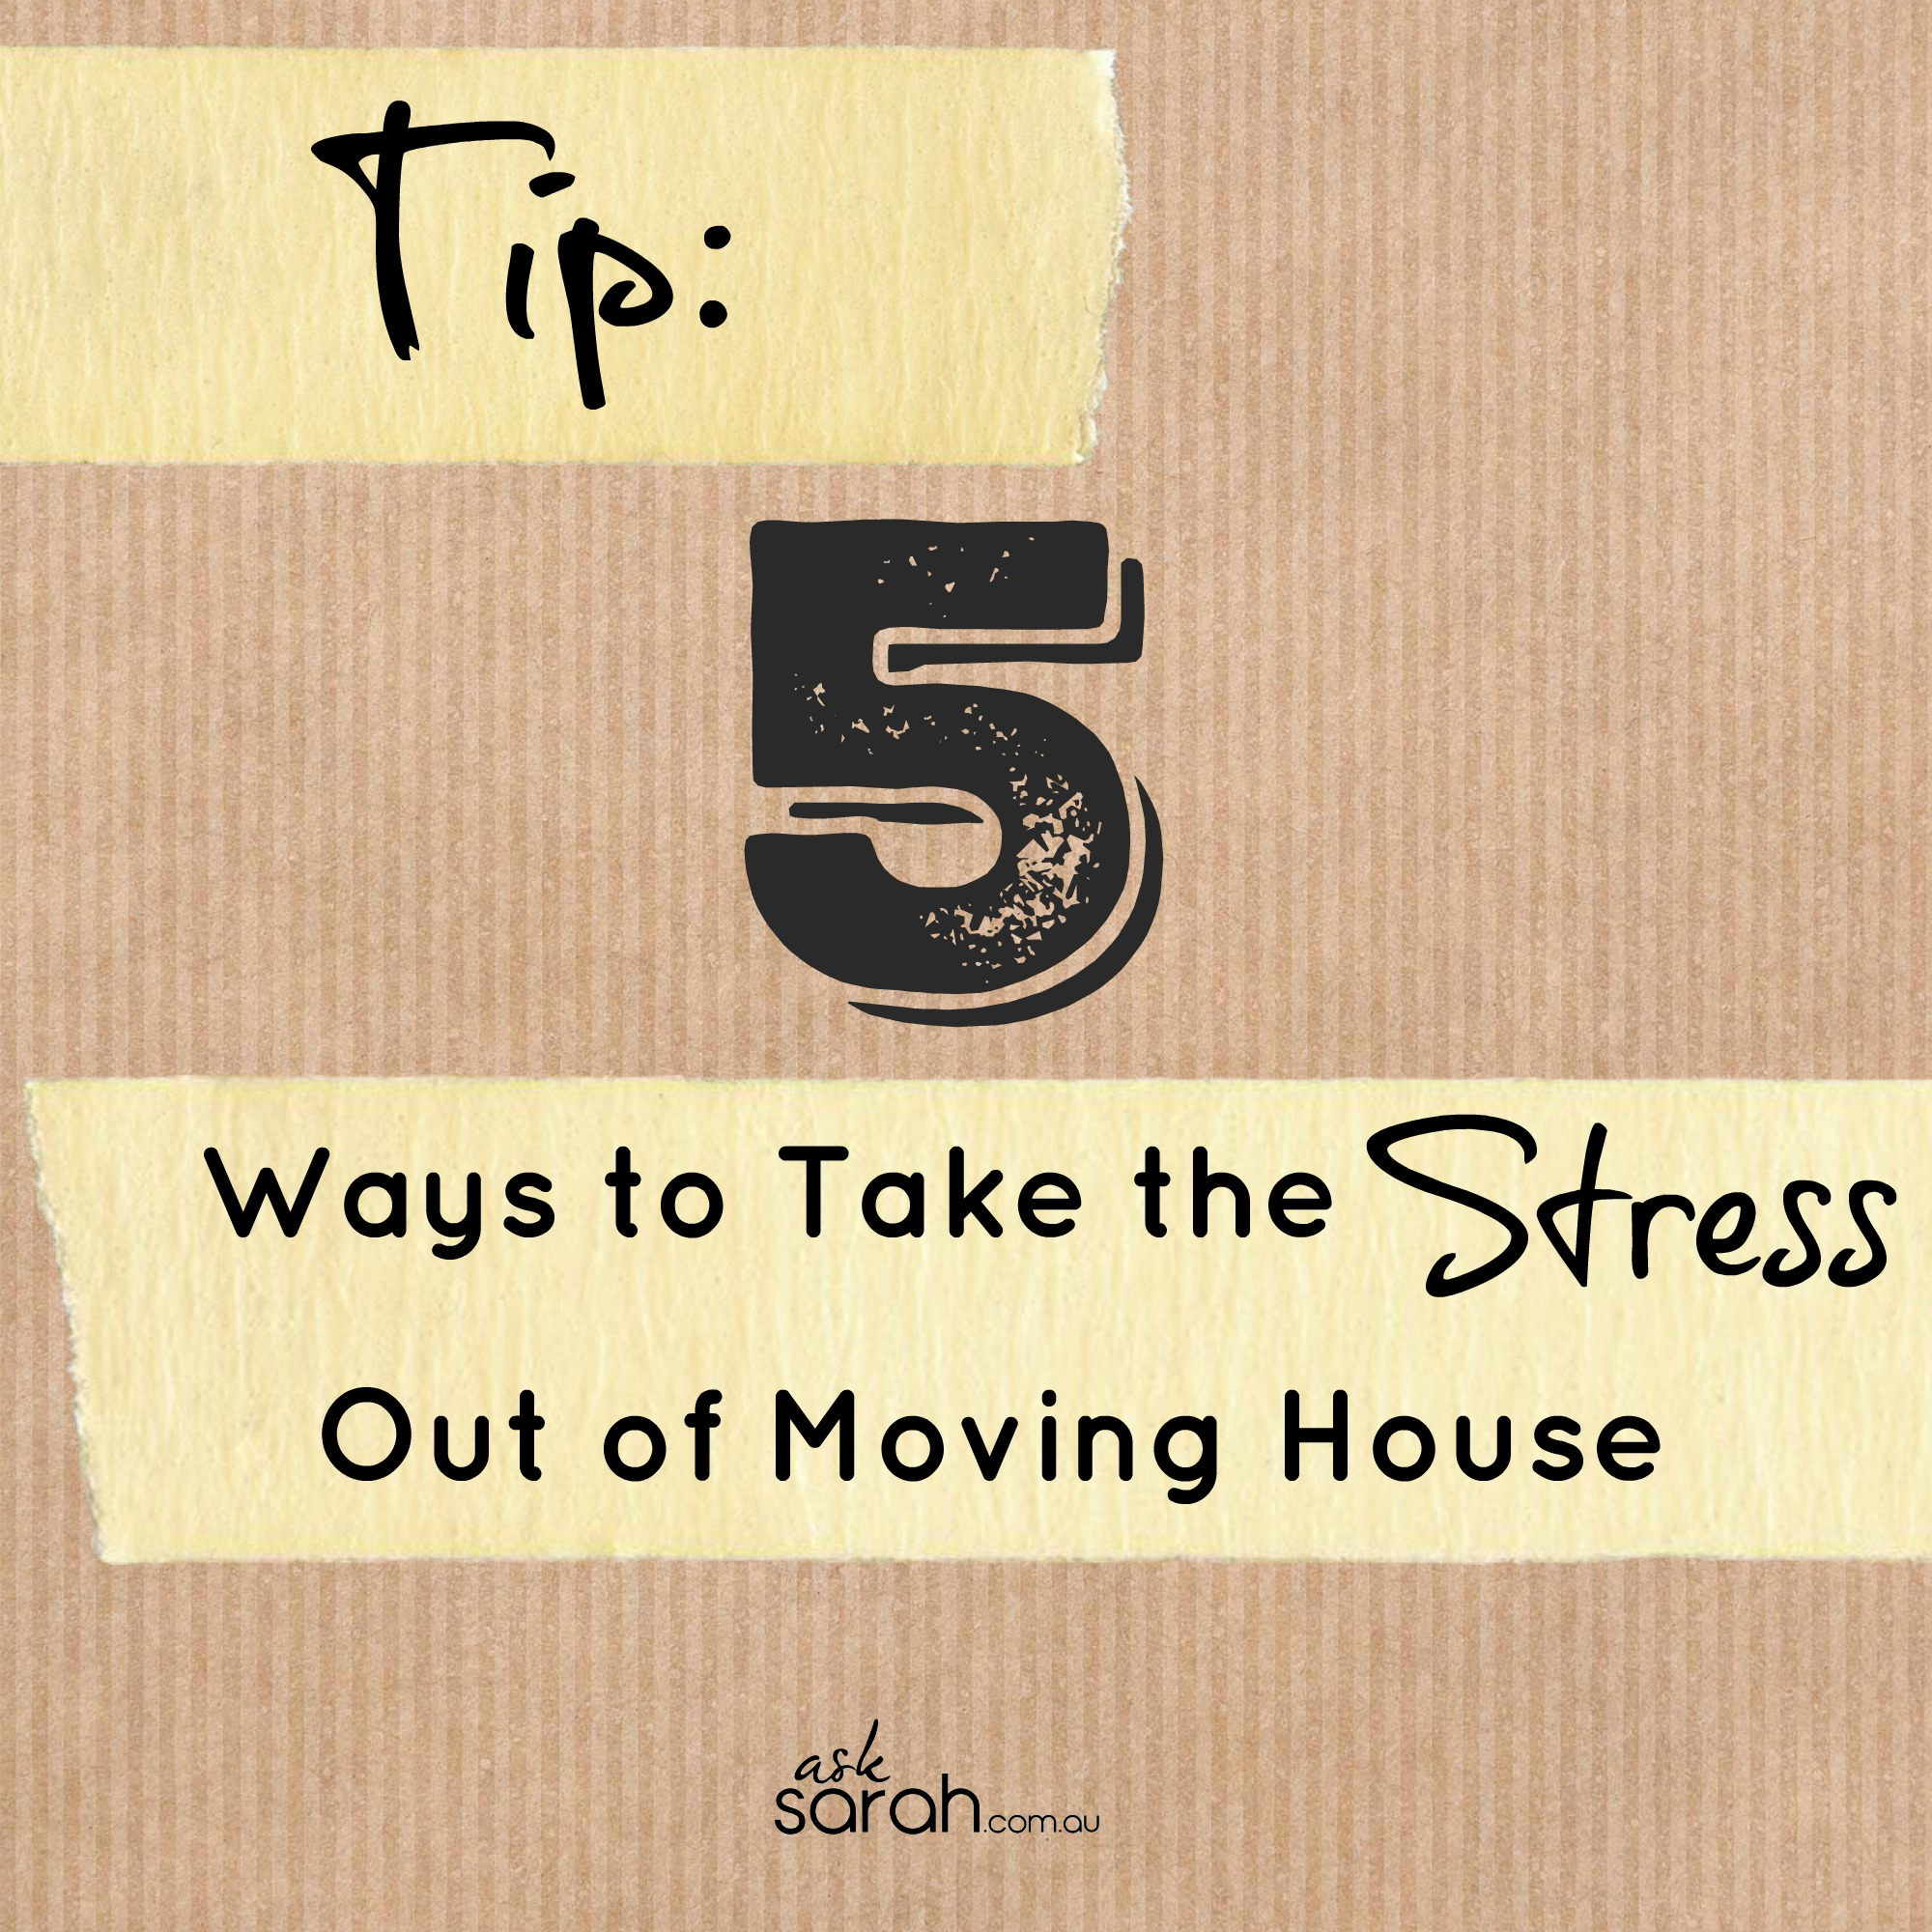 Five Ways to Take the Stress Out of Moving House